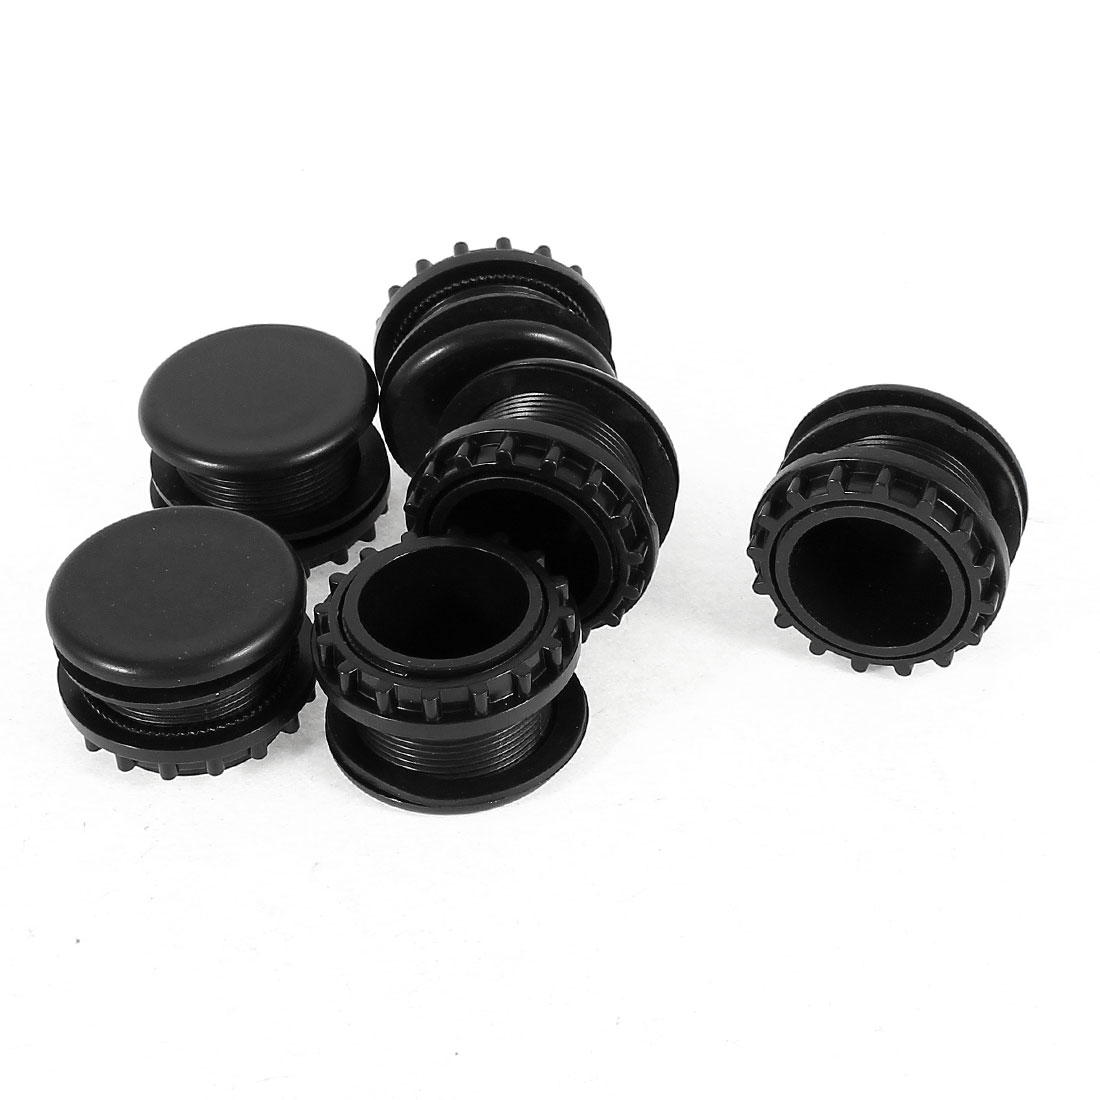 6 Pcs Black Plastic Push Button Switch 22mm Mount Hole Panel Cover Cap